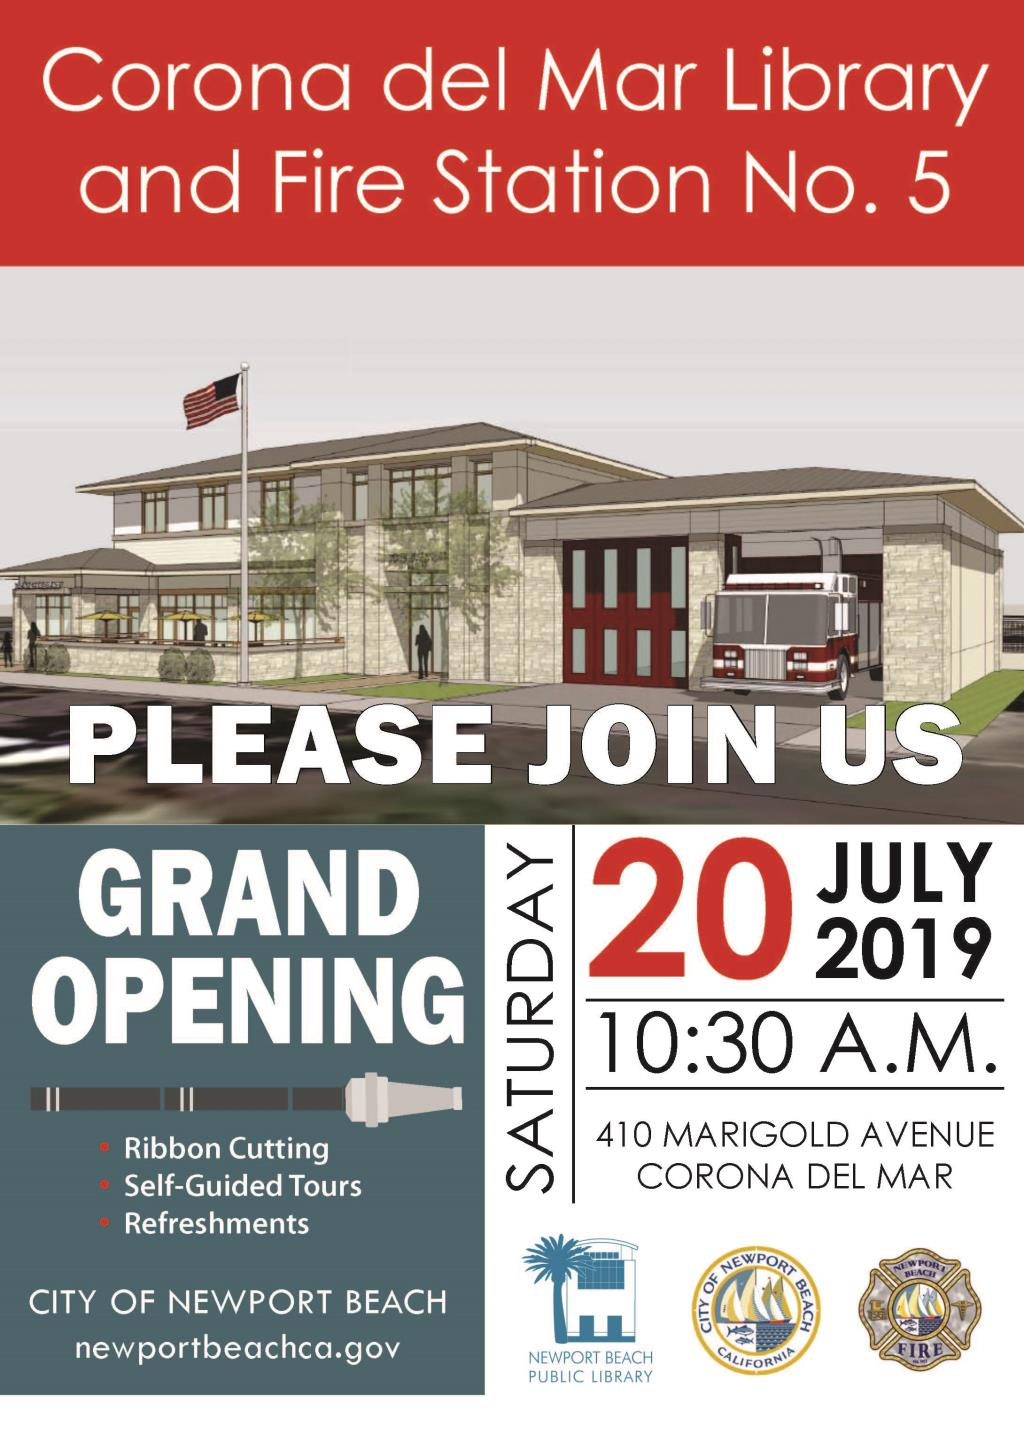 CcM Library and Fire Station No. 5, please join us, grand opening, Saturday, July 20, 2019, 10:30 a.m., 410 Marigold Avenue